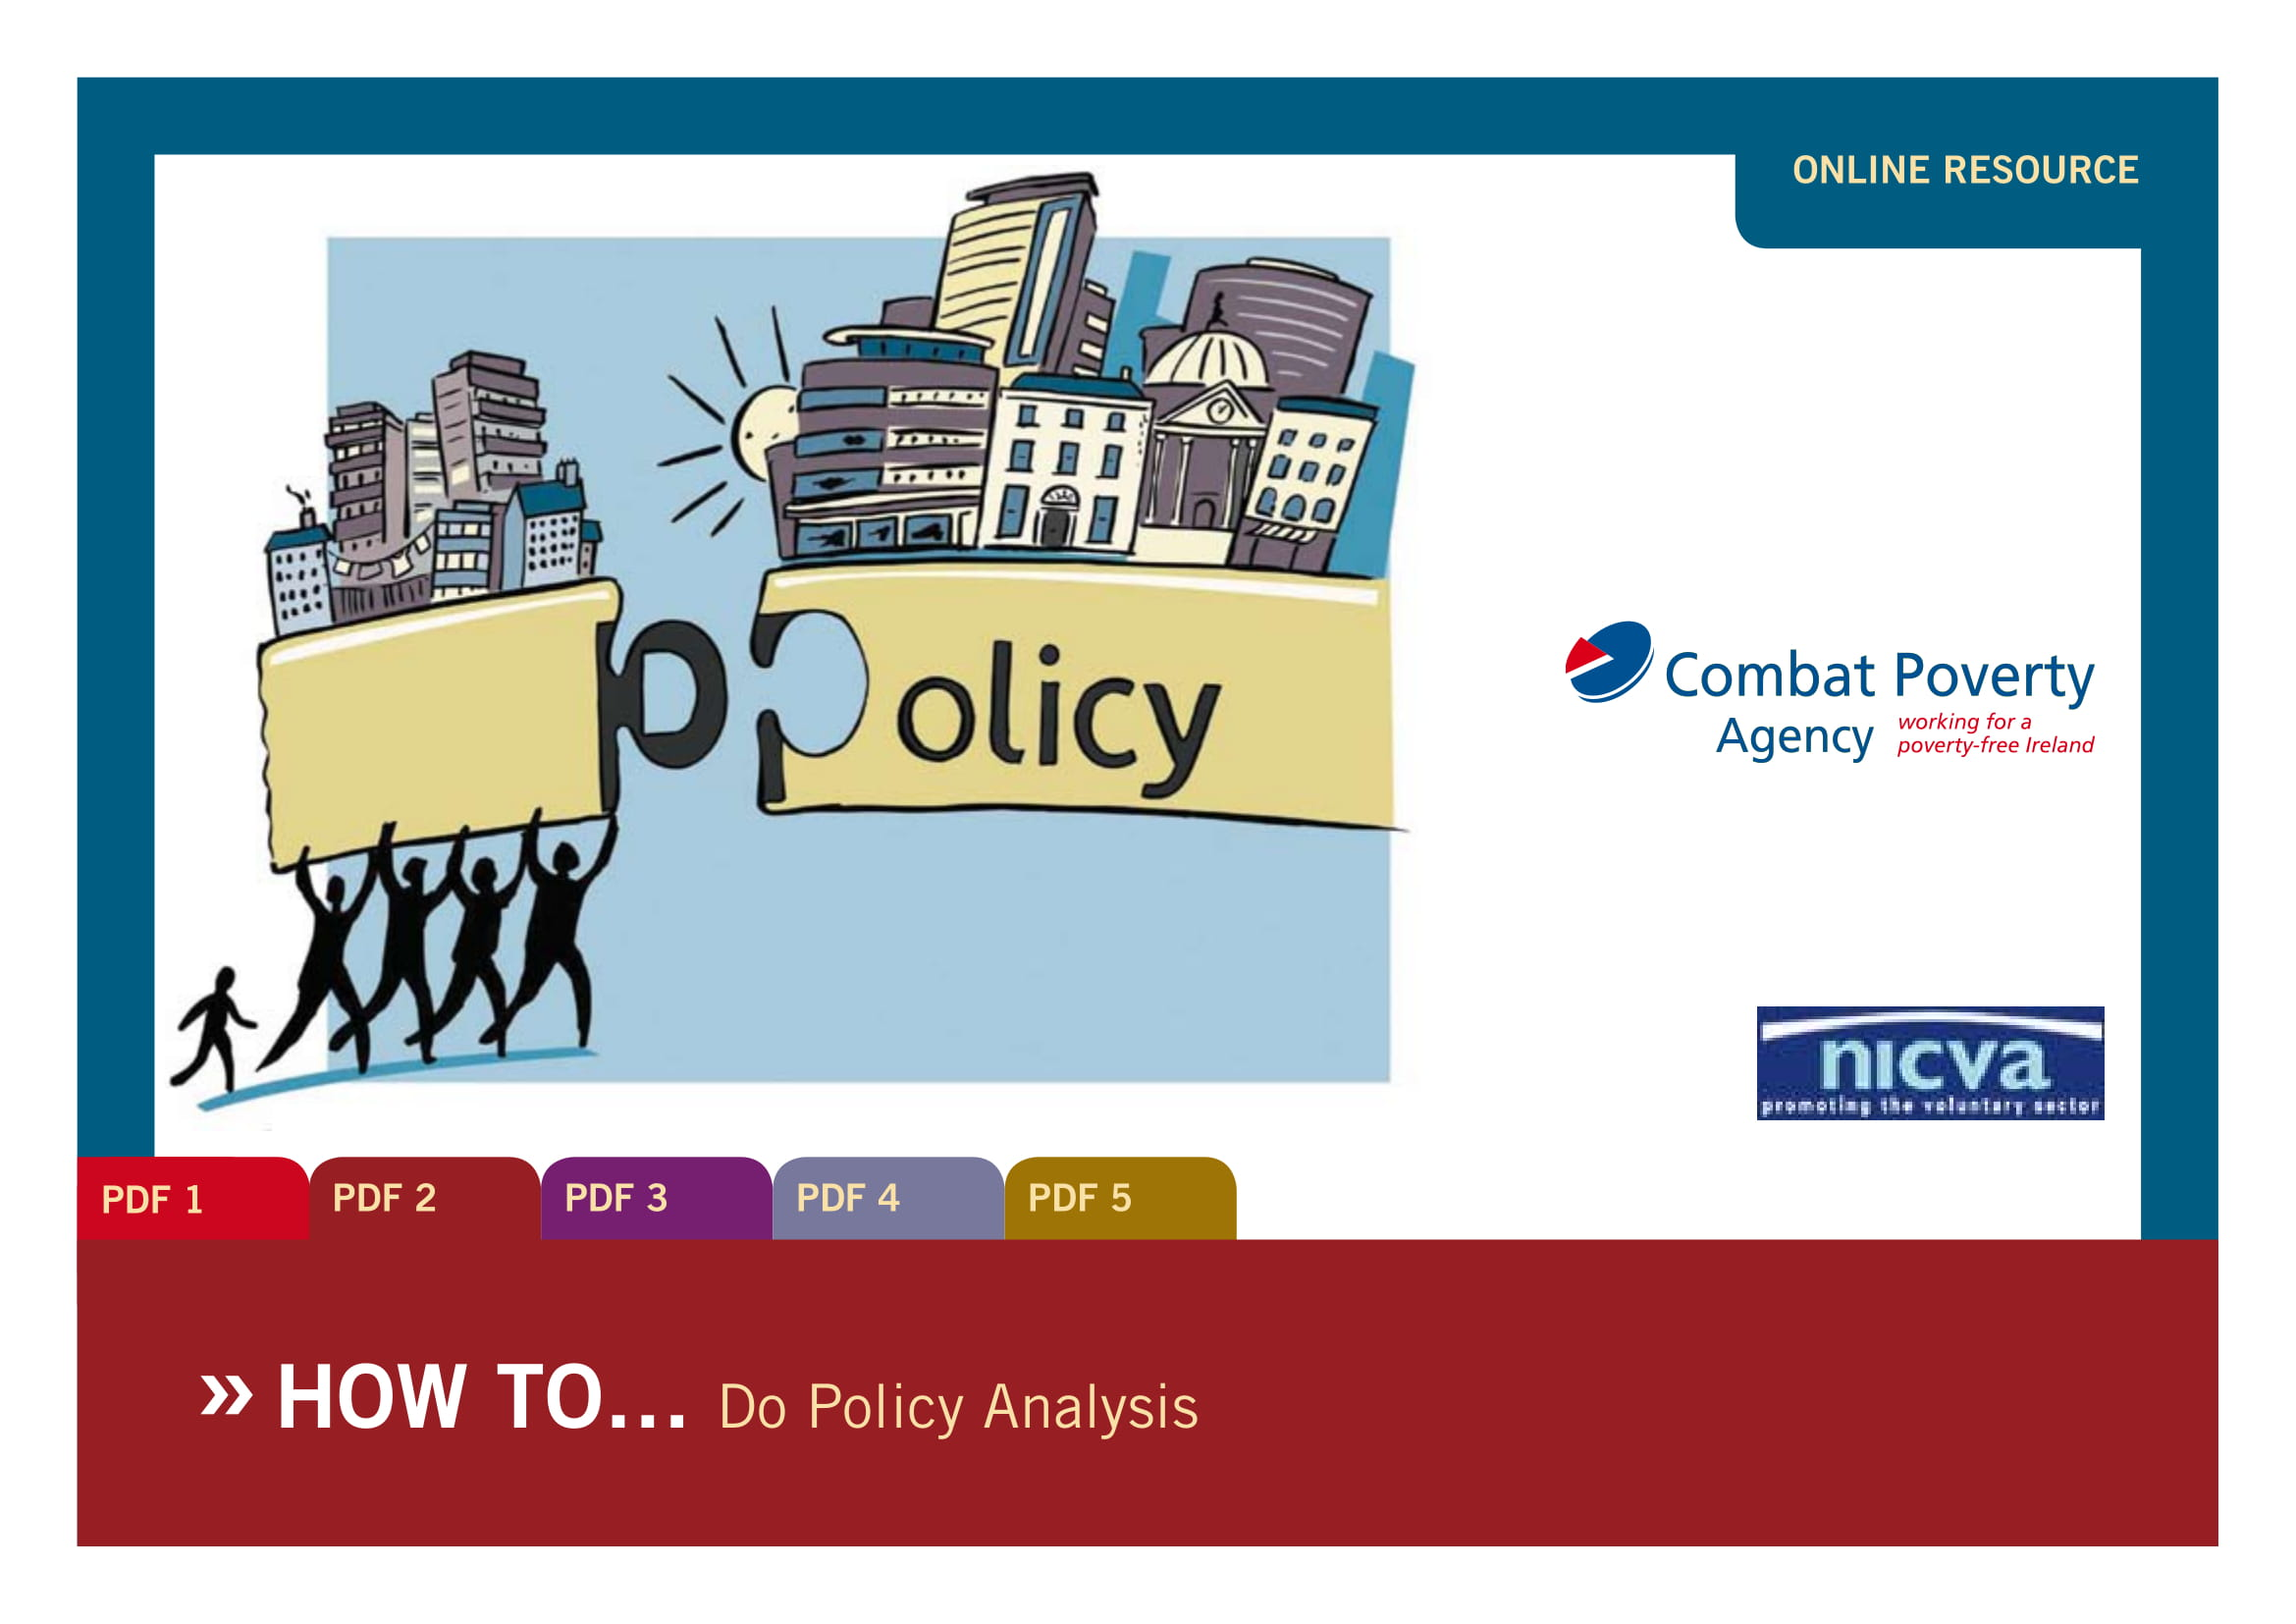 policy analysis format and content guidelines example 01